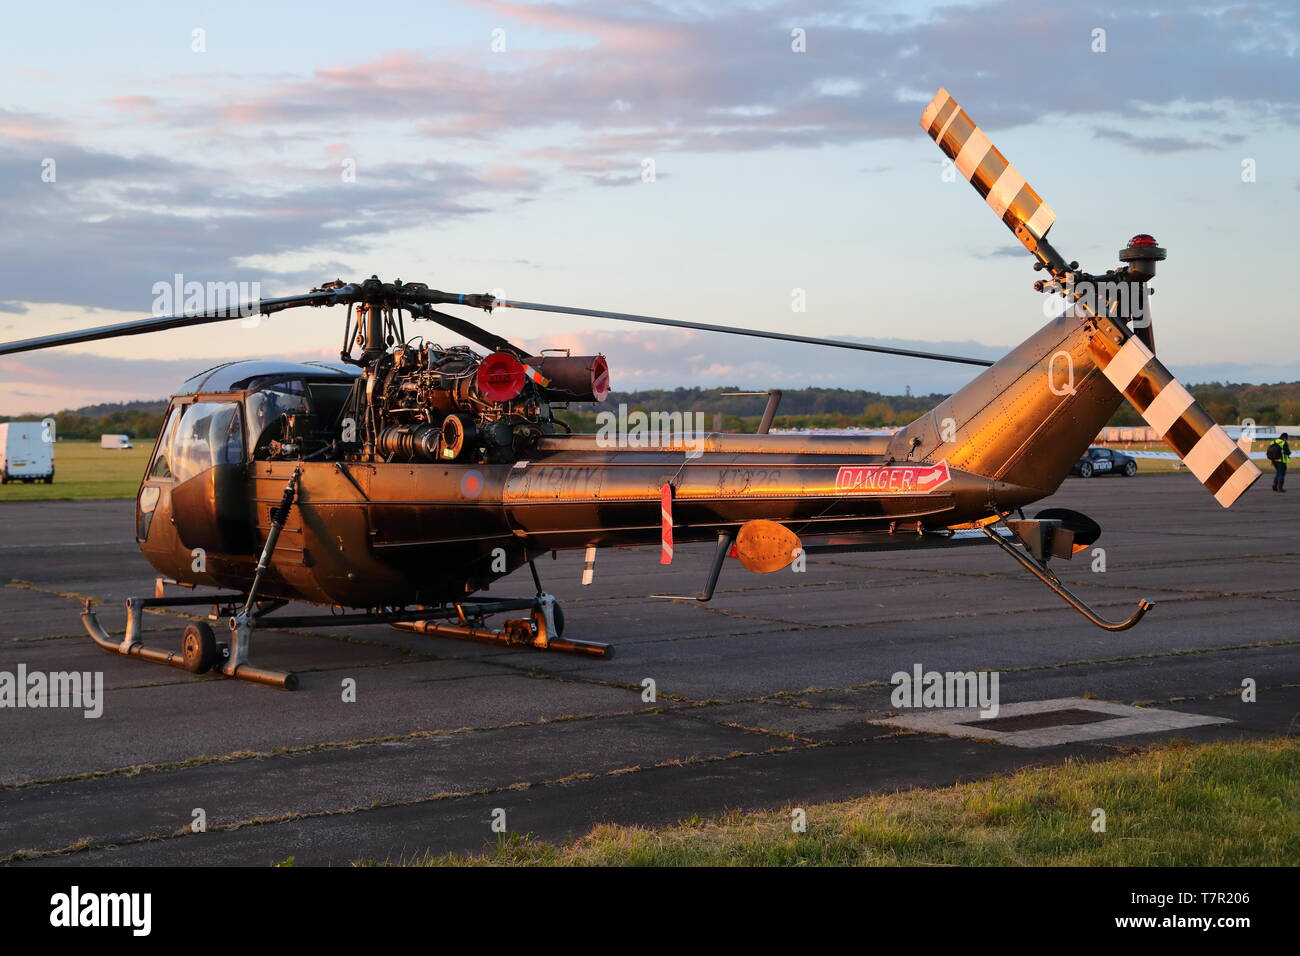 Westland Scout XT626 helicopter at Abingdon Air & Country Show night shoot, Abingdon, UK - Stock Image